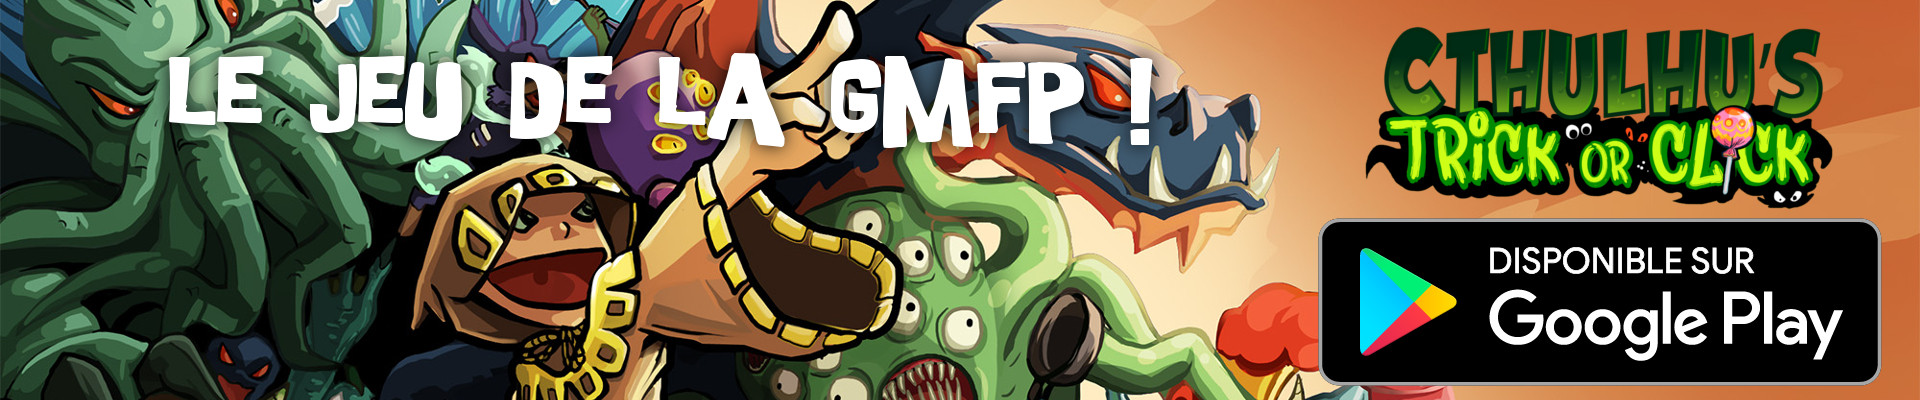 Cthulhu Trick or Click, le jeux de la GMFP disponnible sur Google Play